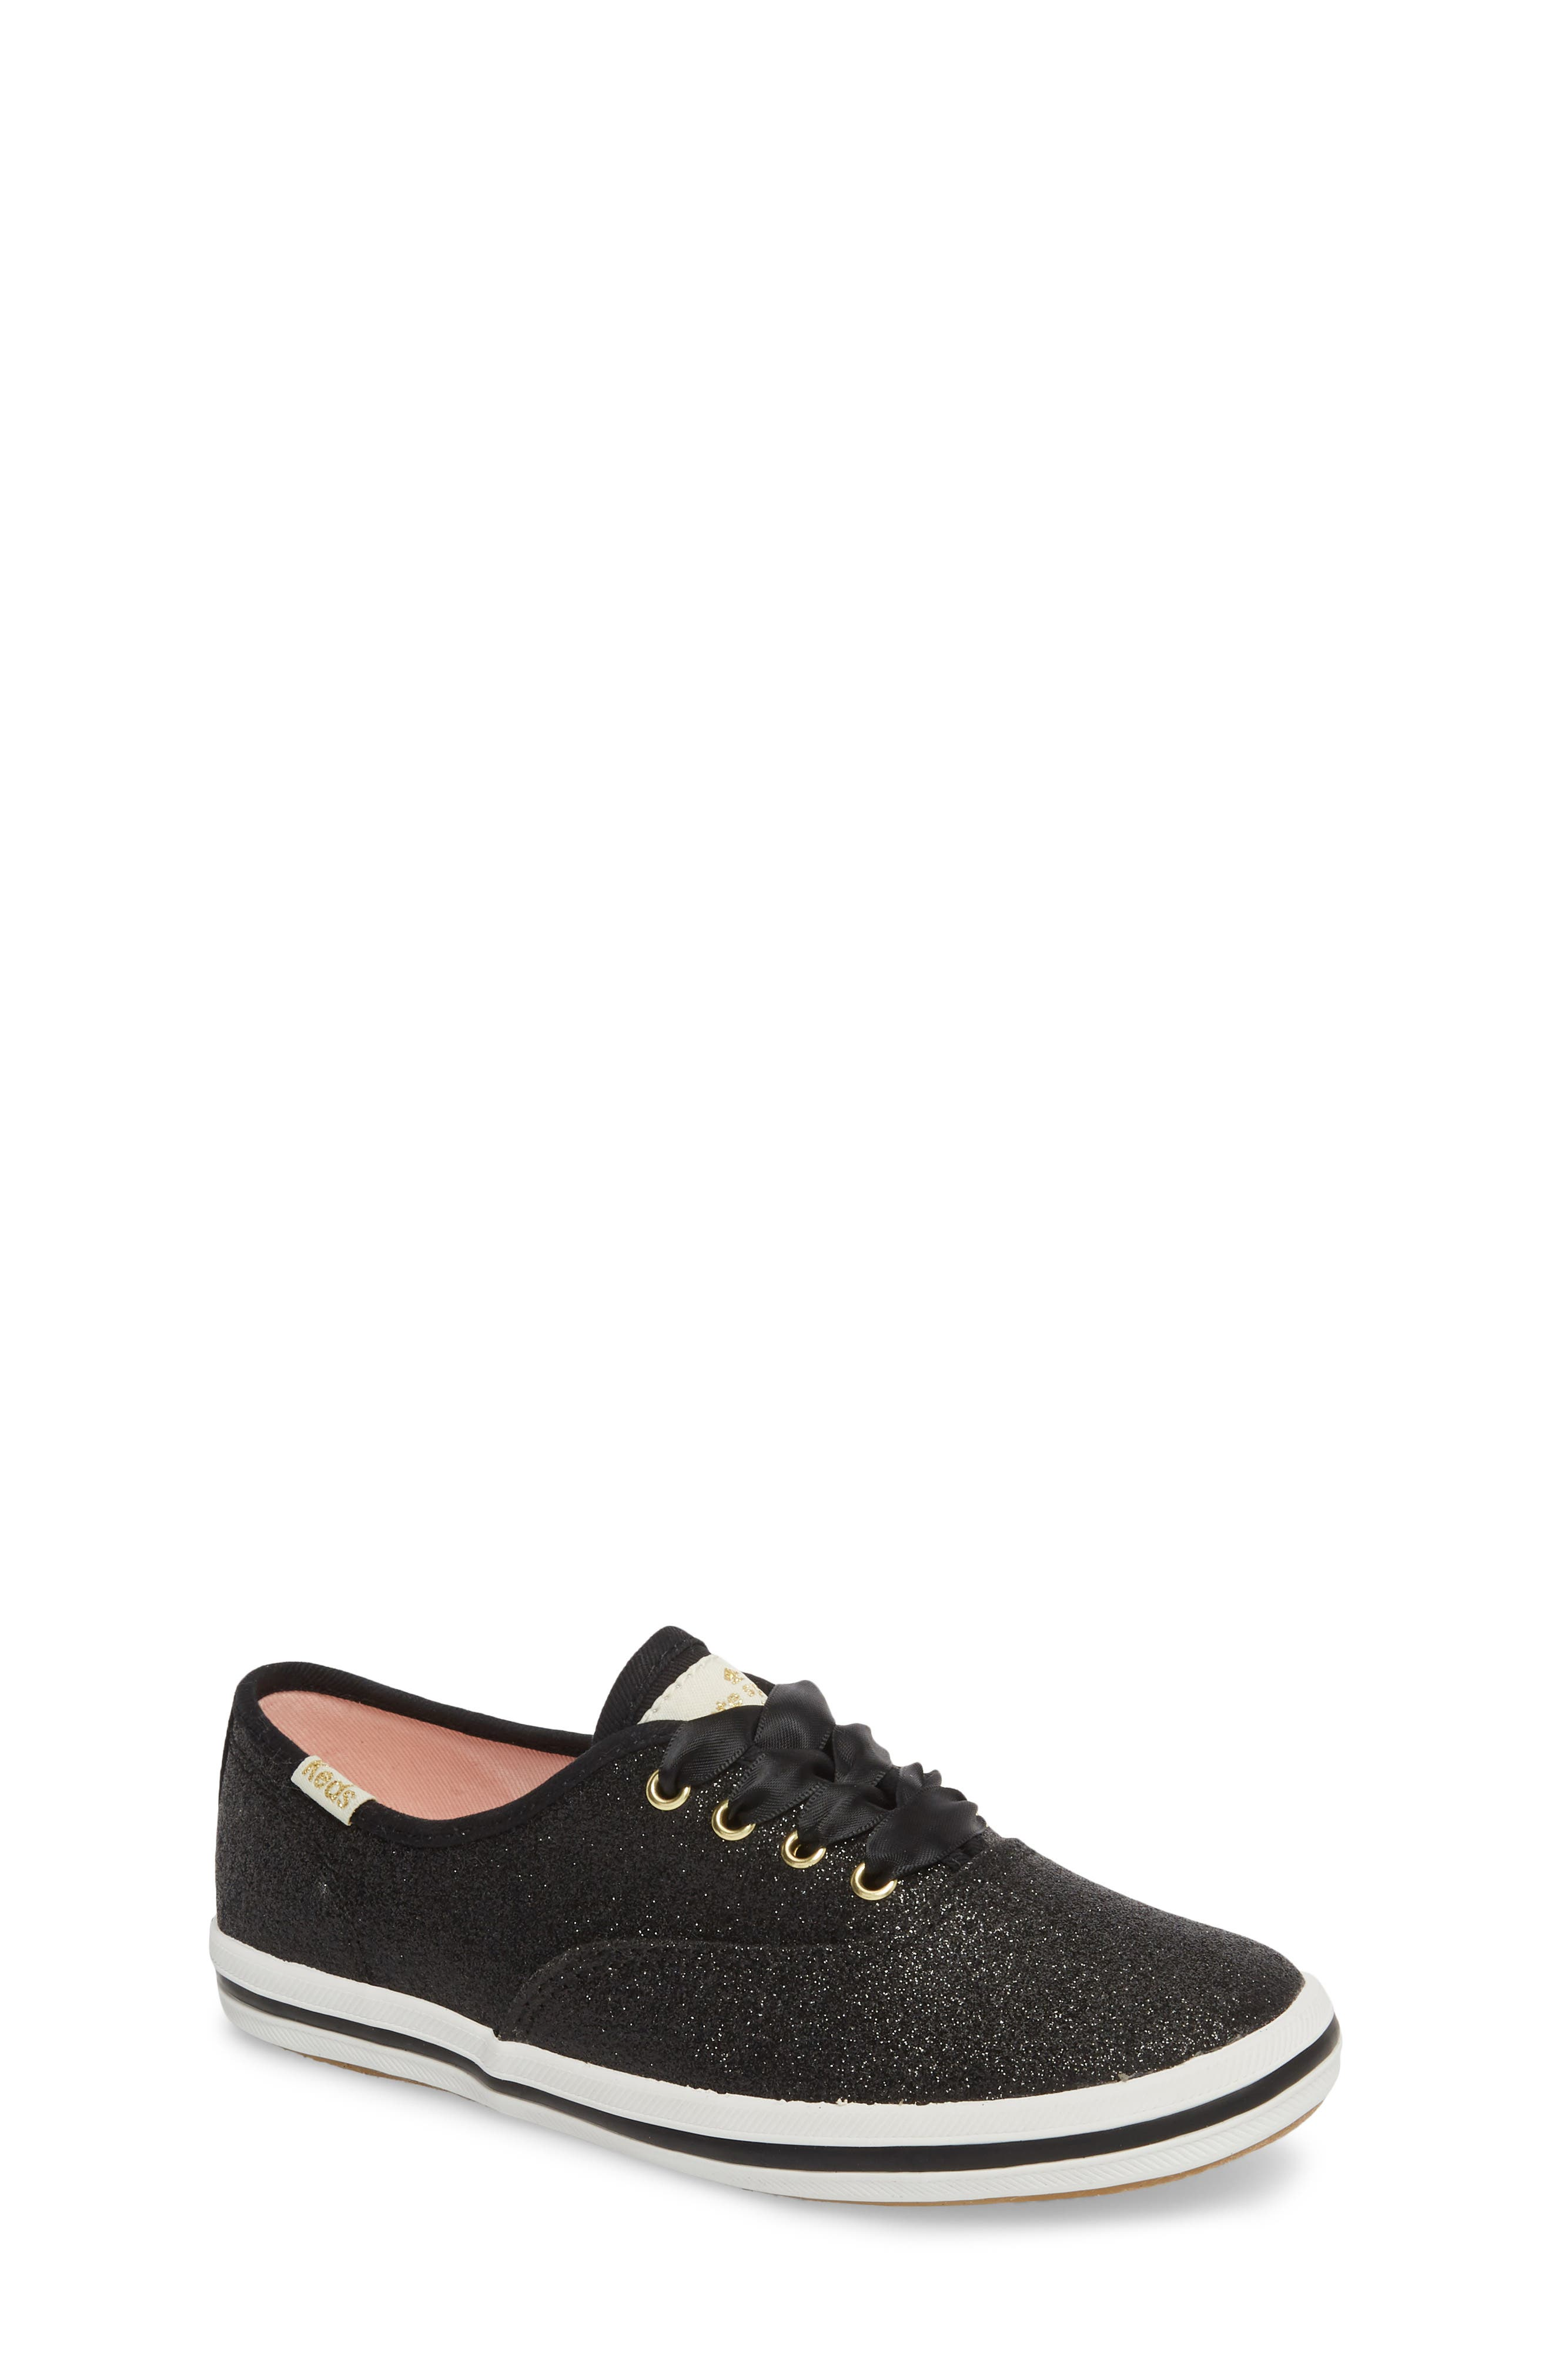 KEDS<SUP>®</SUP>, x kate spade new york Champion Glitter Sneaker, Main thumbnail 1, color, BLACK